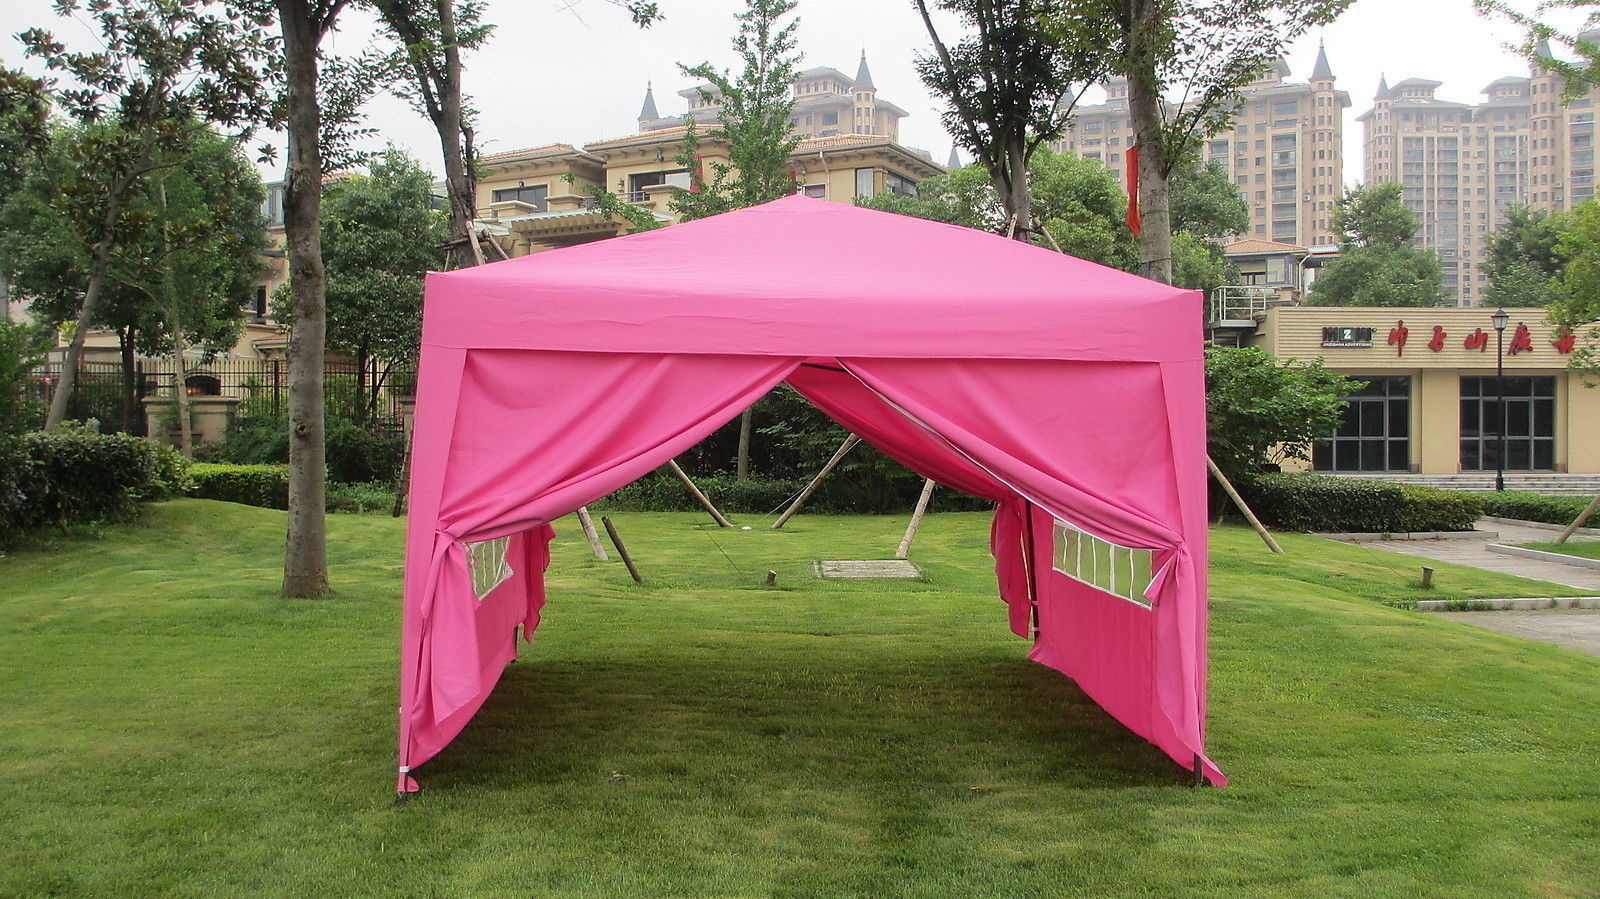 Mcombo 10x10 Ez Pop Up 4 Walls Canopy Party Tent Gazebo